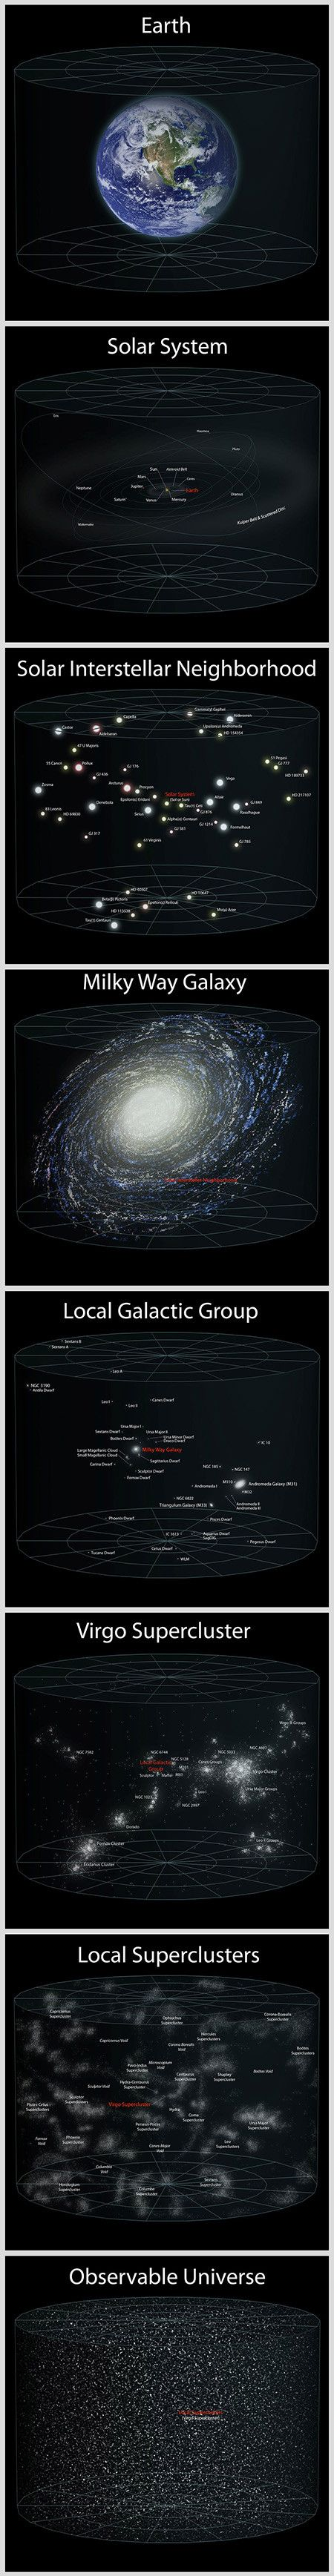 Earth's location in the universe